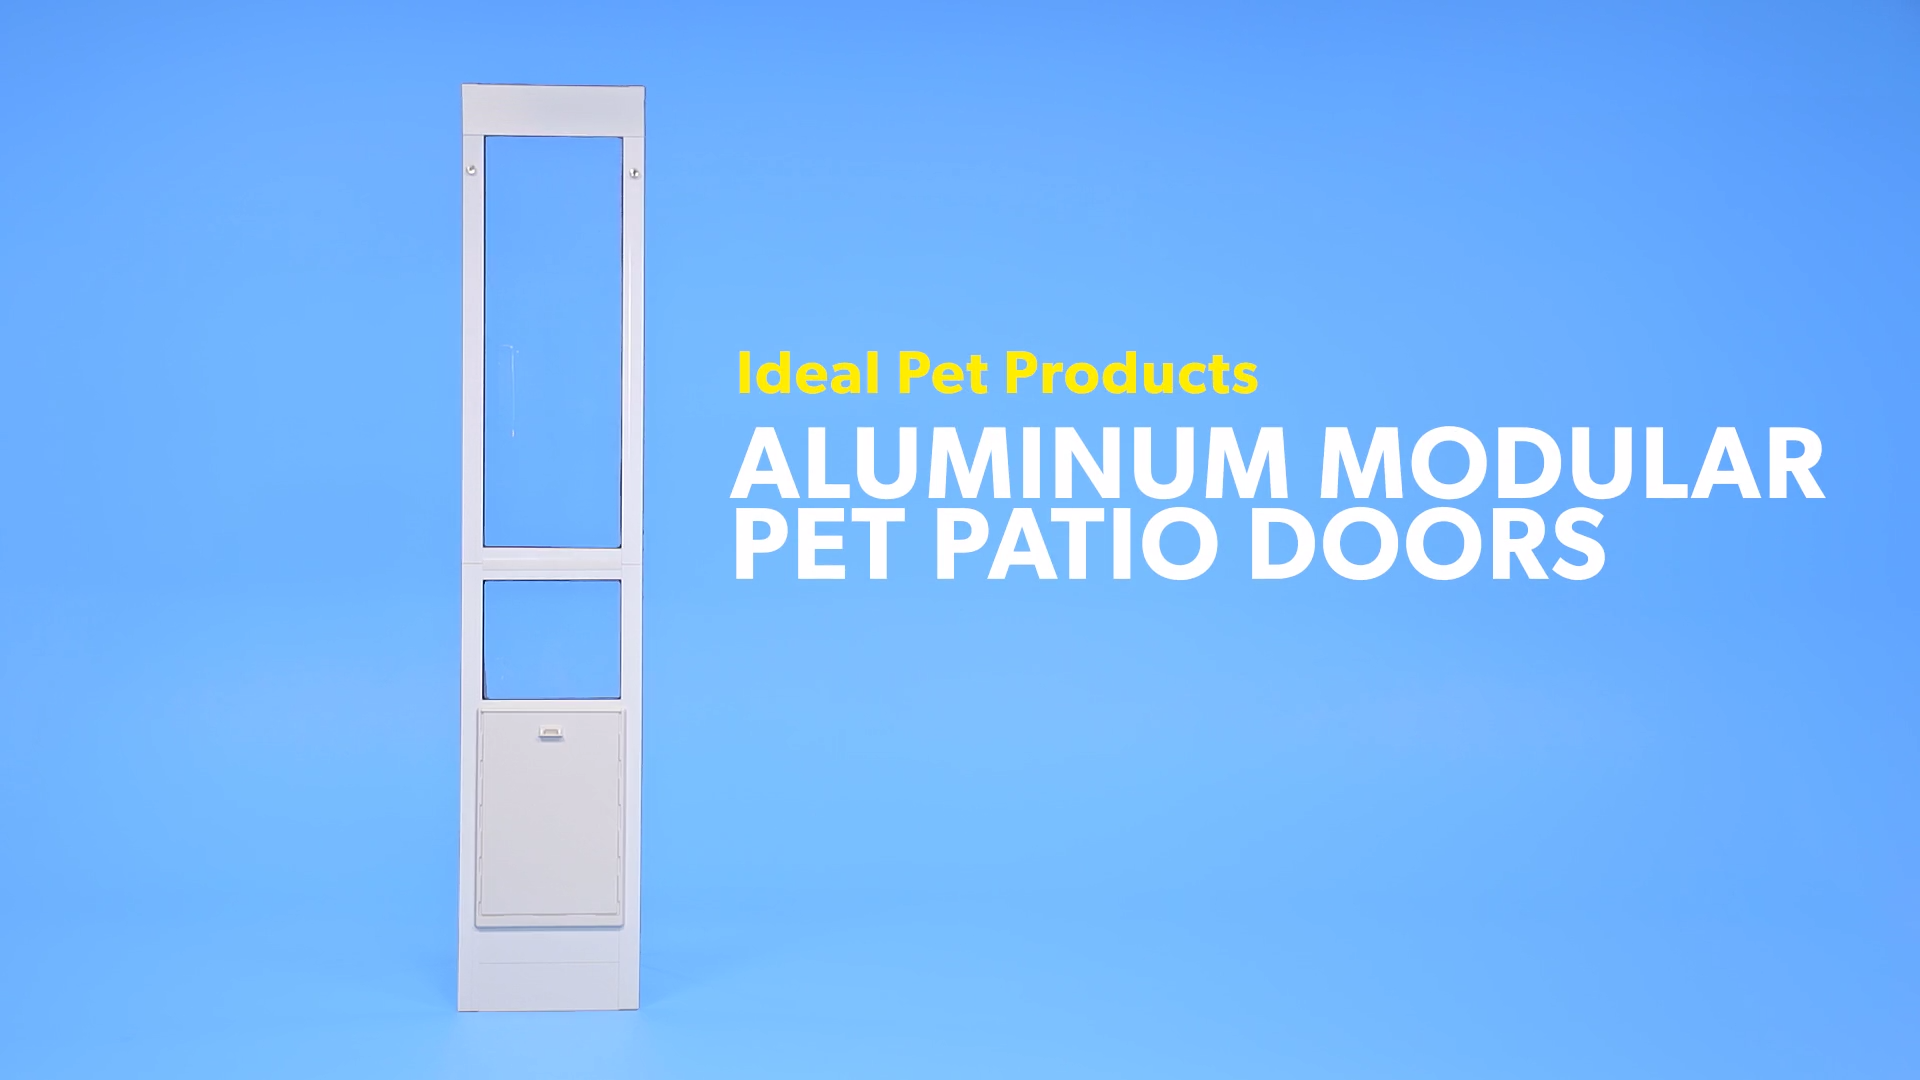 Watch our Ideal Pet Products video  sc 1 th 168 & Ideal Pet Products Aluminum Modular Pet Patio Doors White Small ...